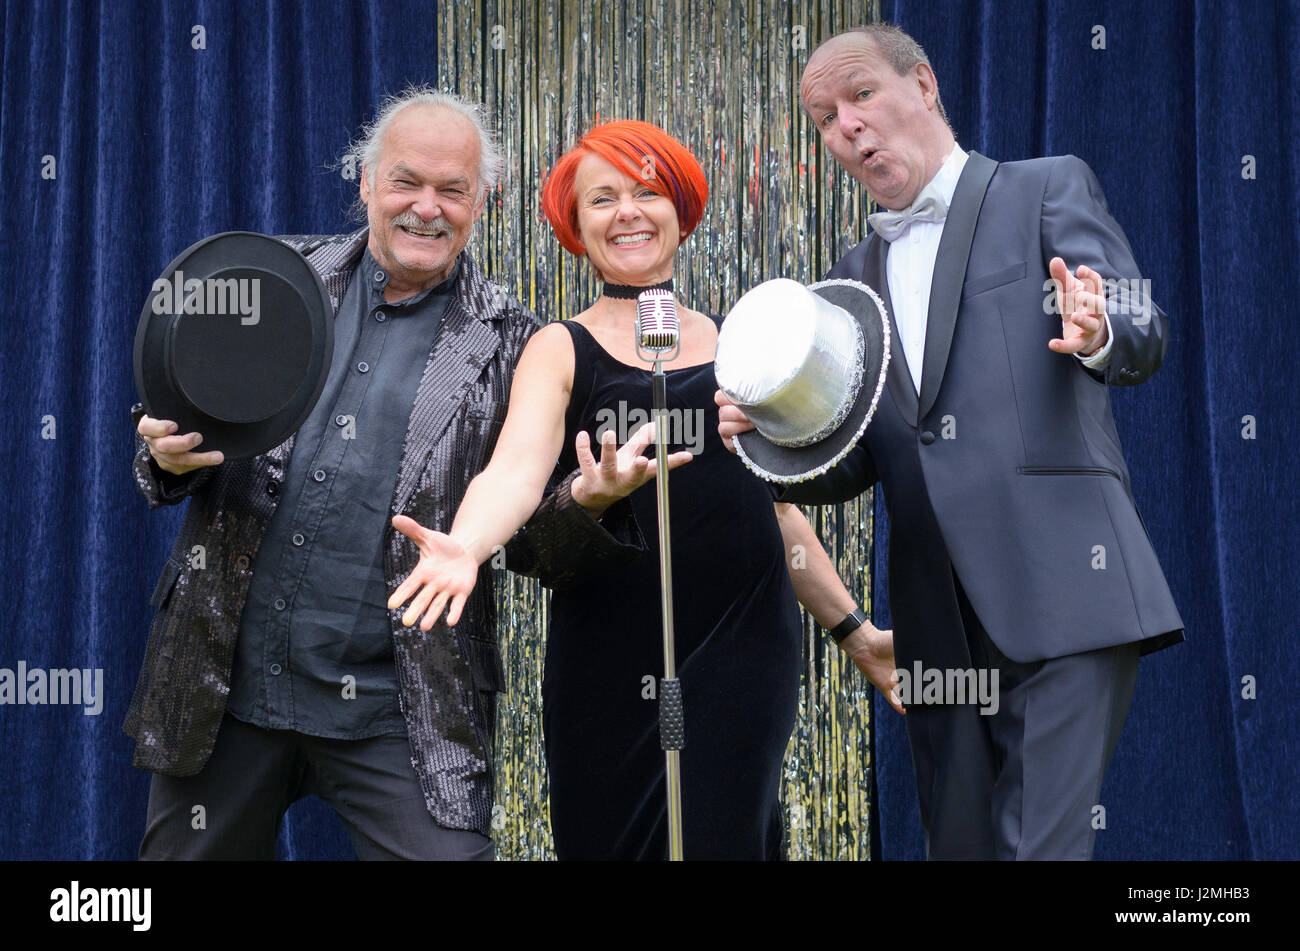 Three lively performers on stage celebrating in front of a microphone with a vivacious redhead woman and two gentlemen - Stock Image